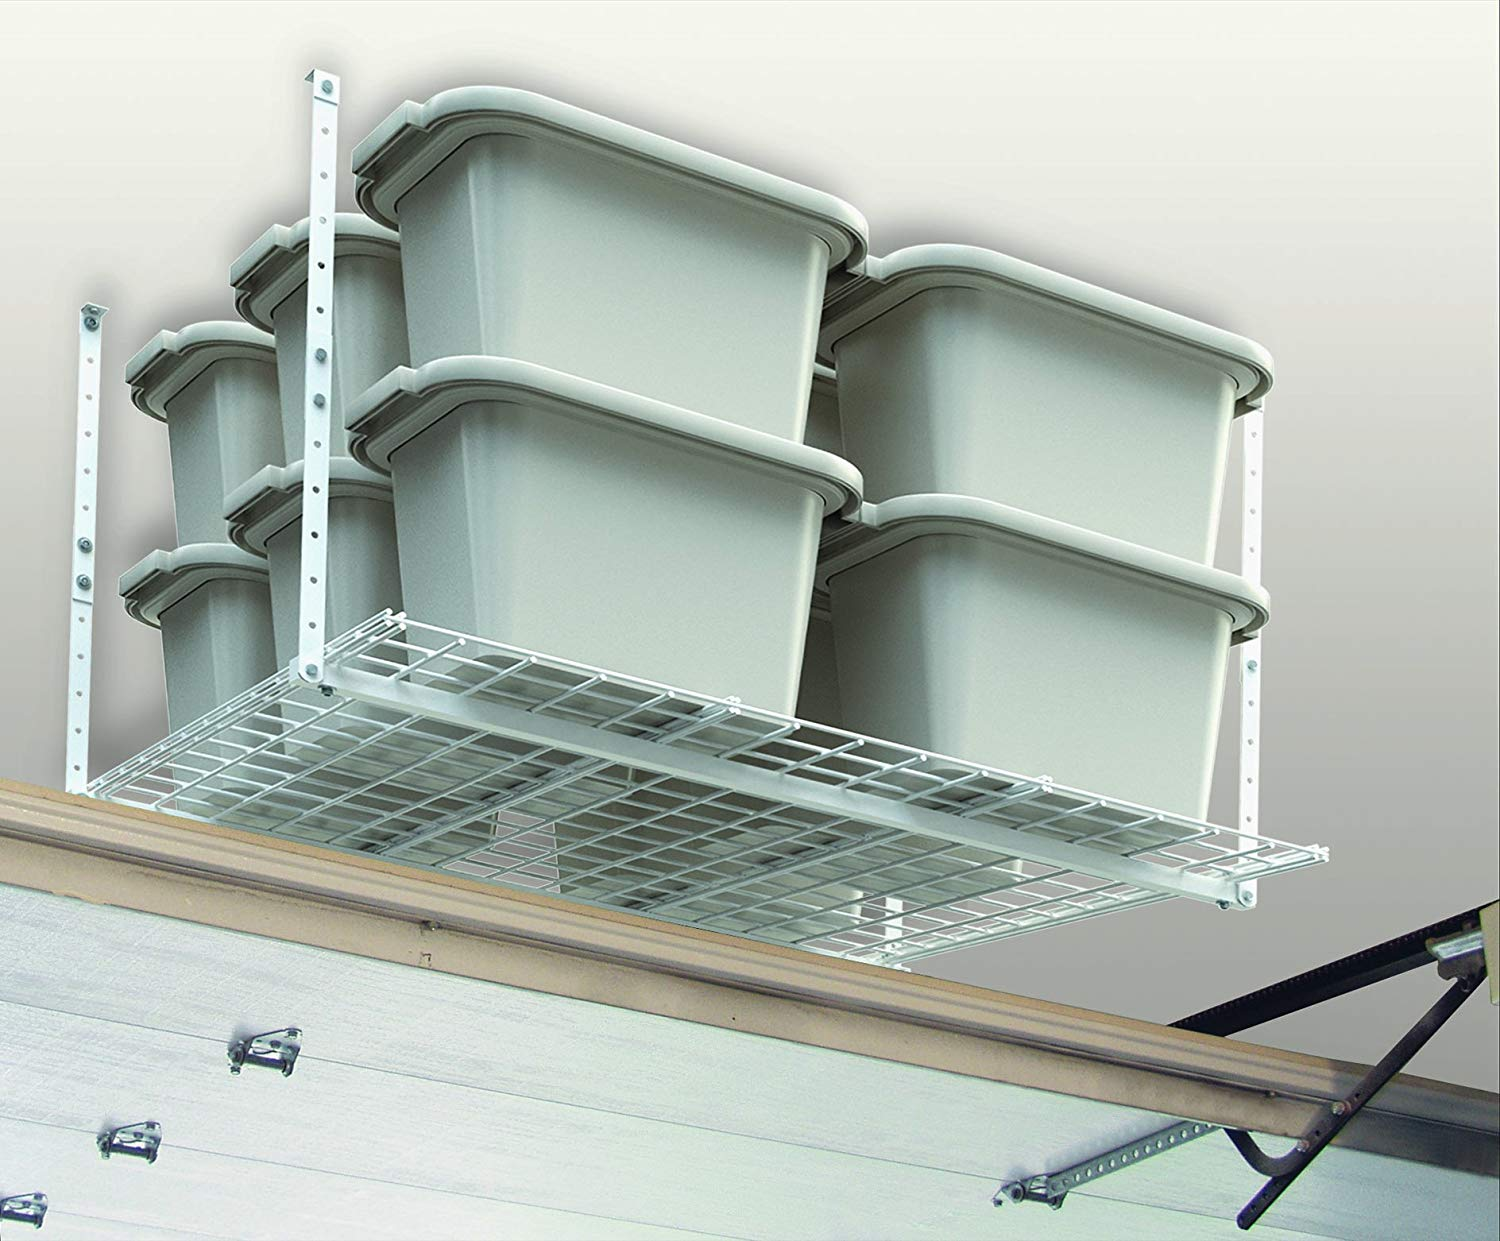 Best storage racks for residential garage